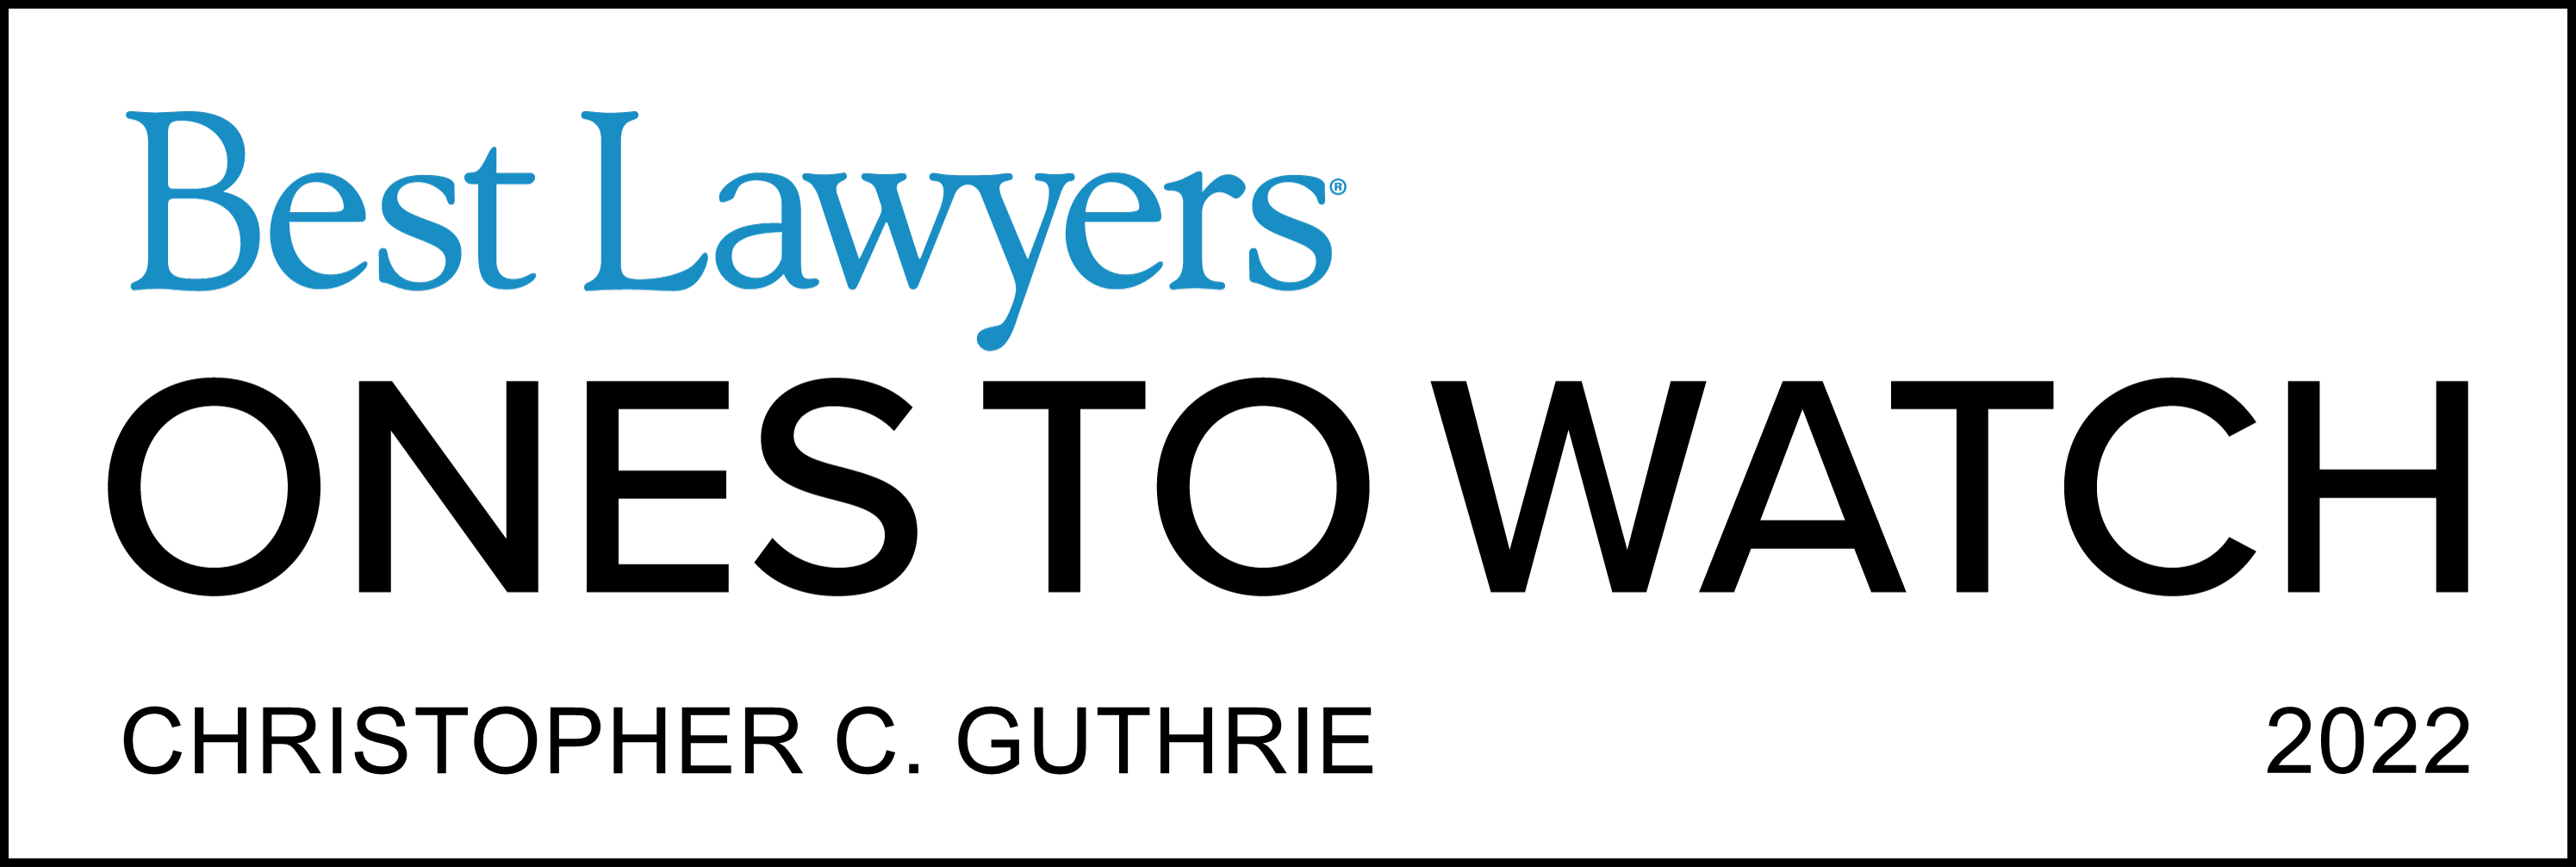 Best Lawyers - Ones to Watch Award